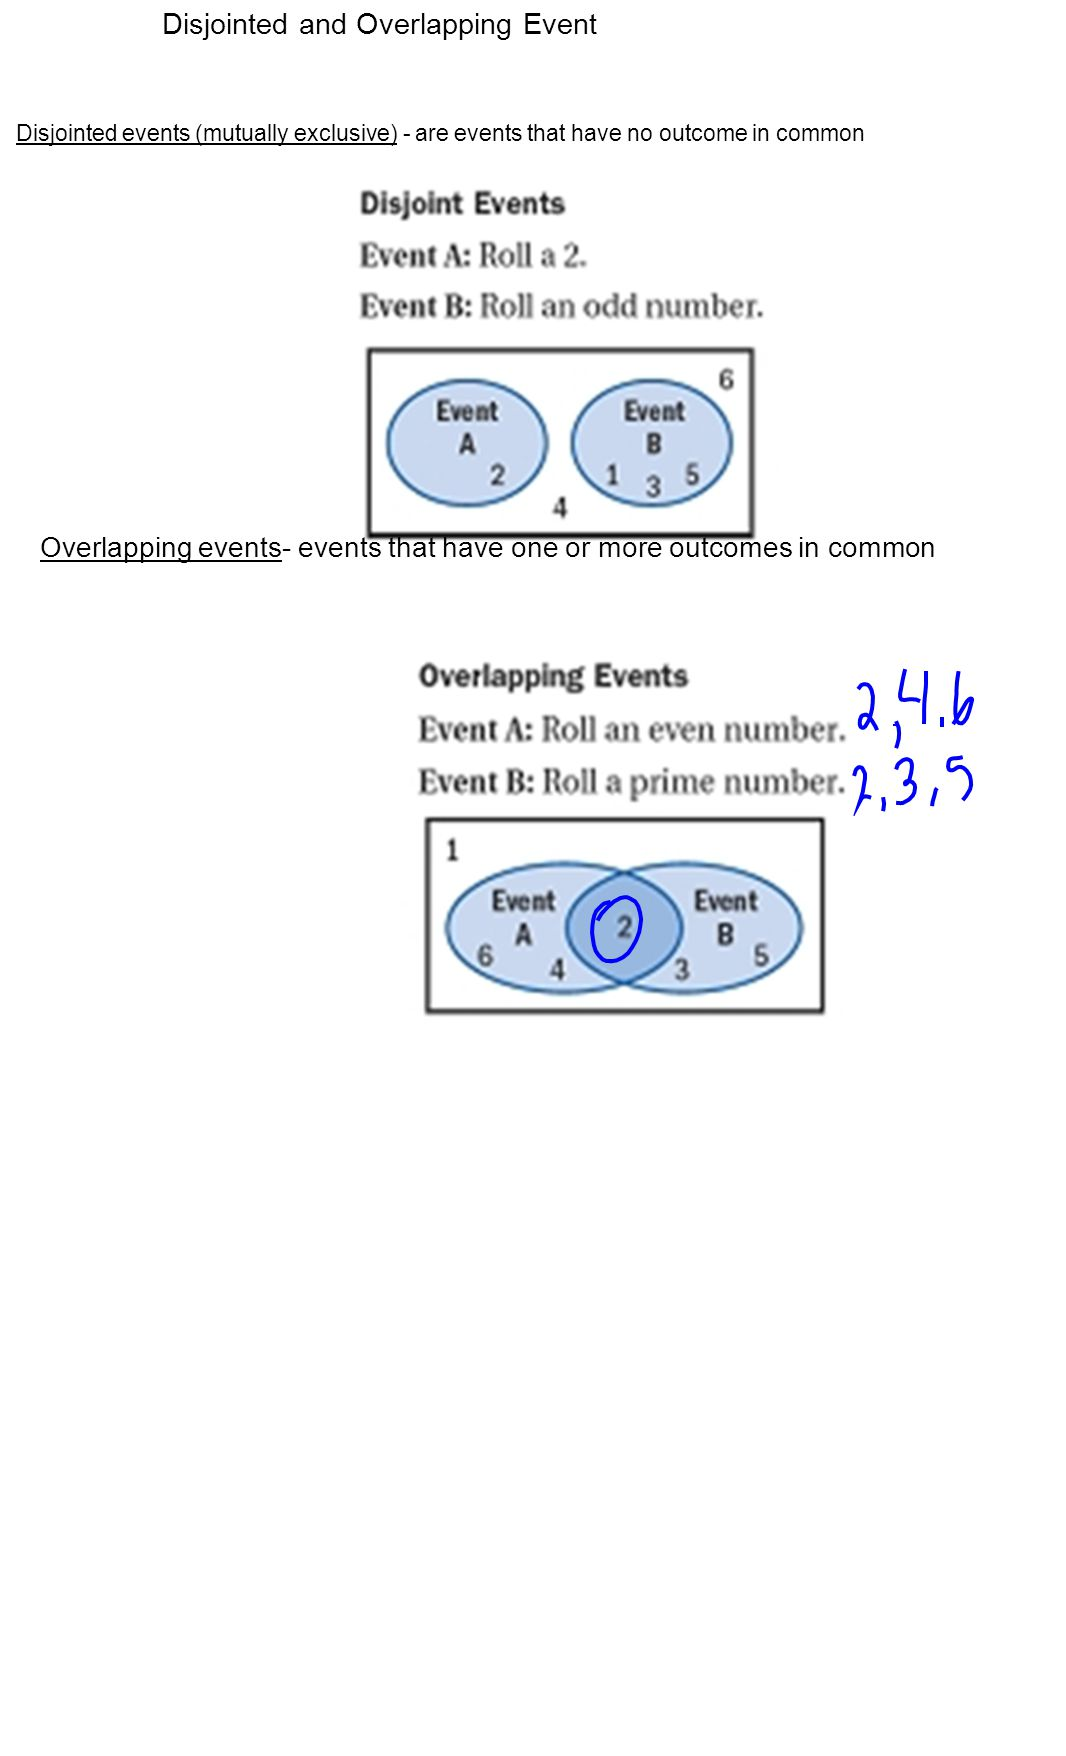 Disjointed and Overlapping Event Disjointed events (mutually exclusive) - are events that have no outcome in common Overlapping events- events that have one or more outcomes in common